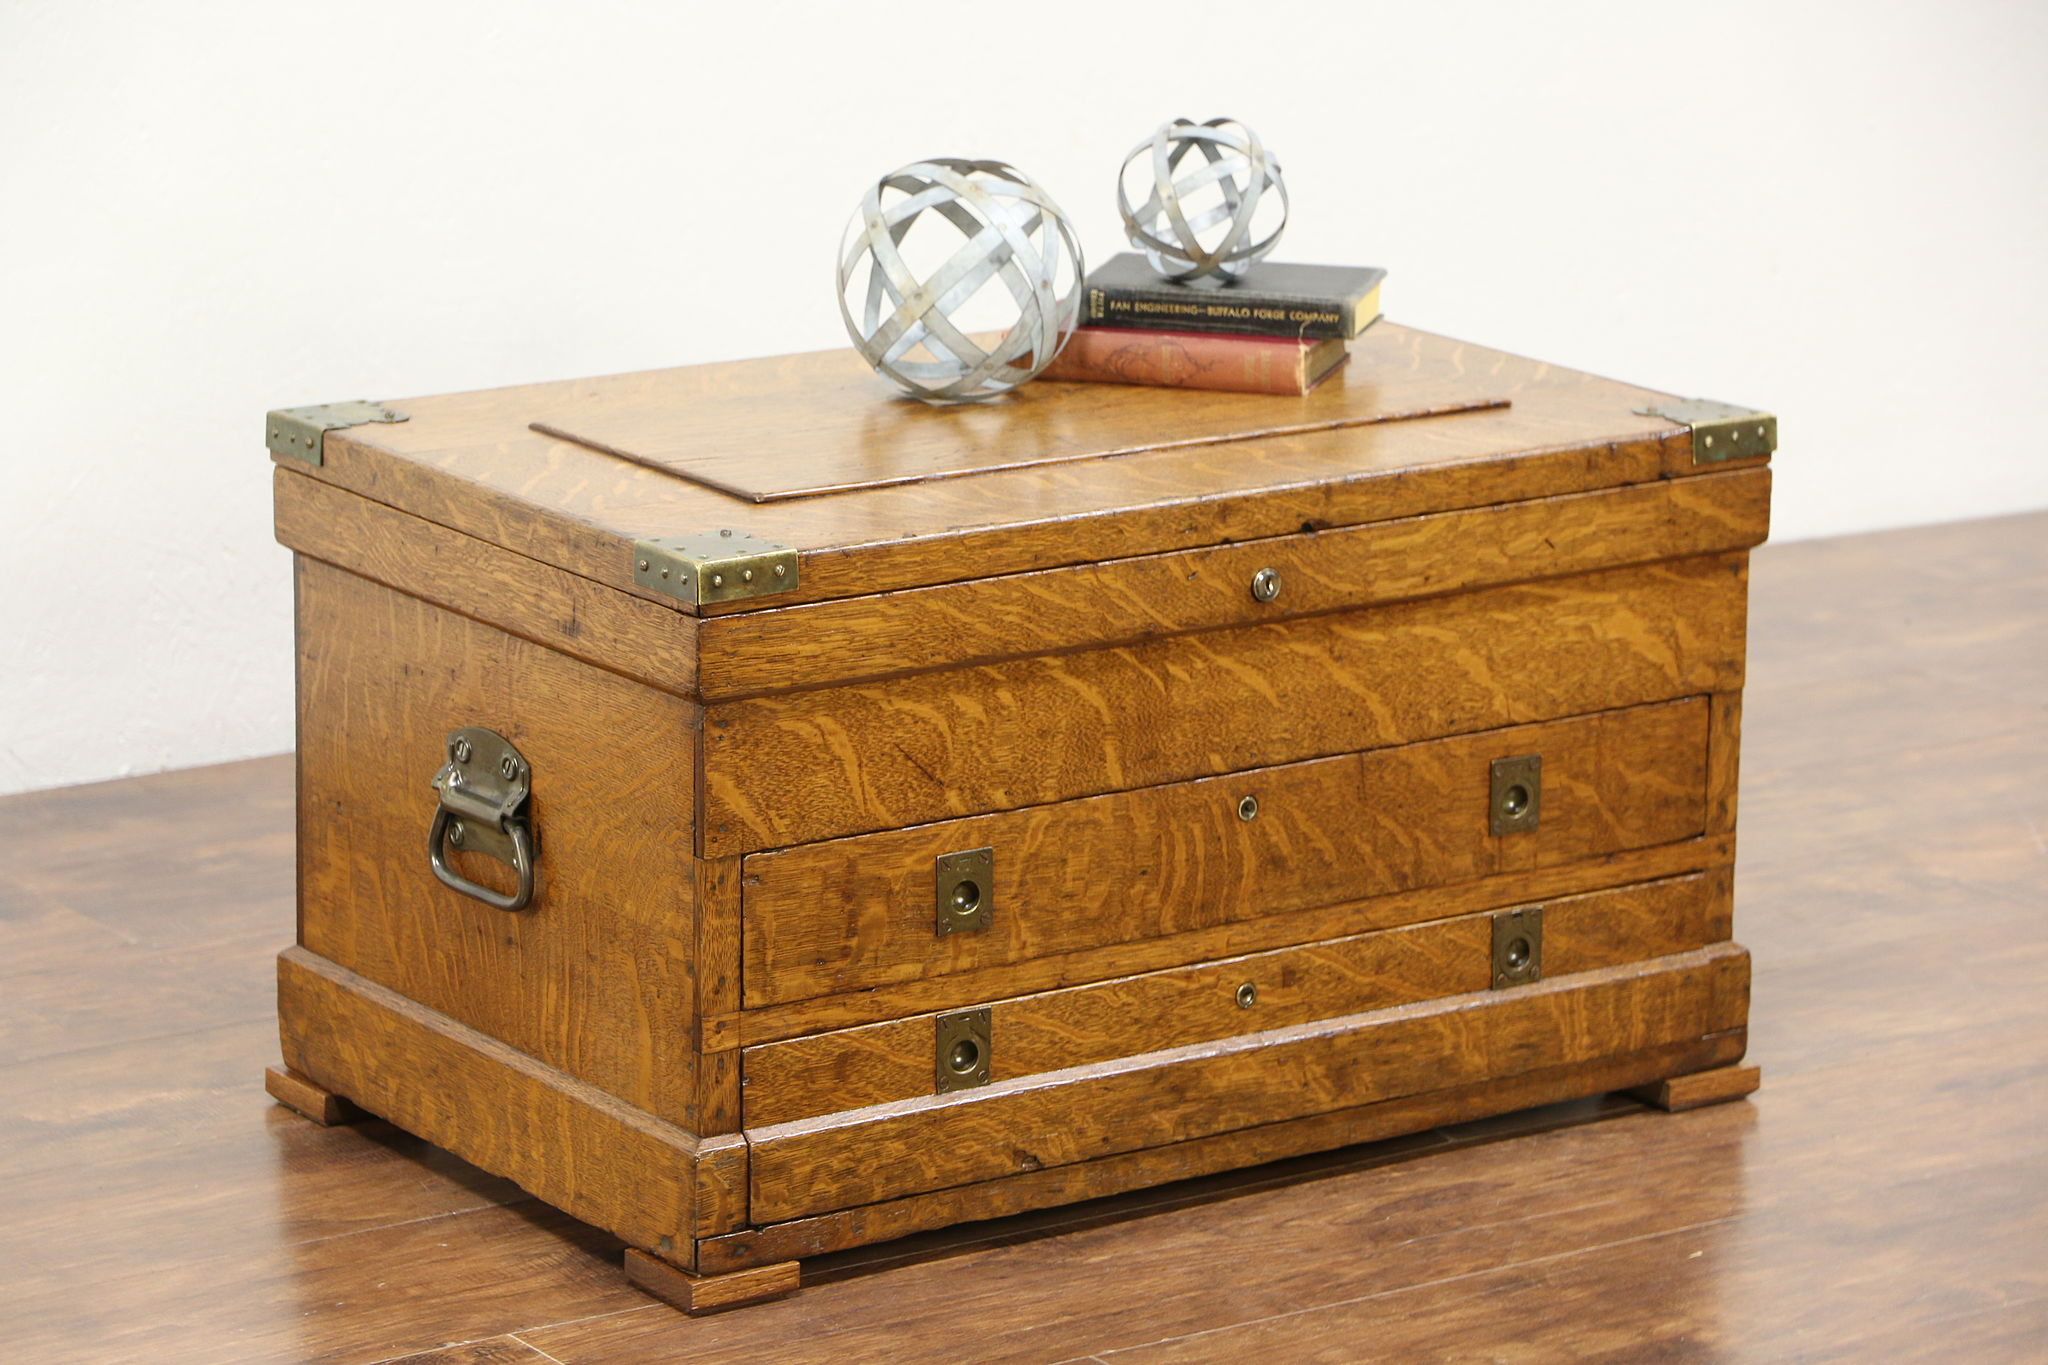 Carpenter Antique 1900 S Oak Trunk Tool Chest Or Coffee Table